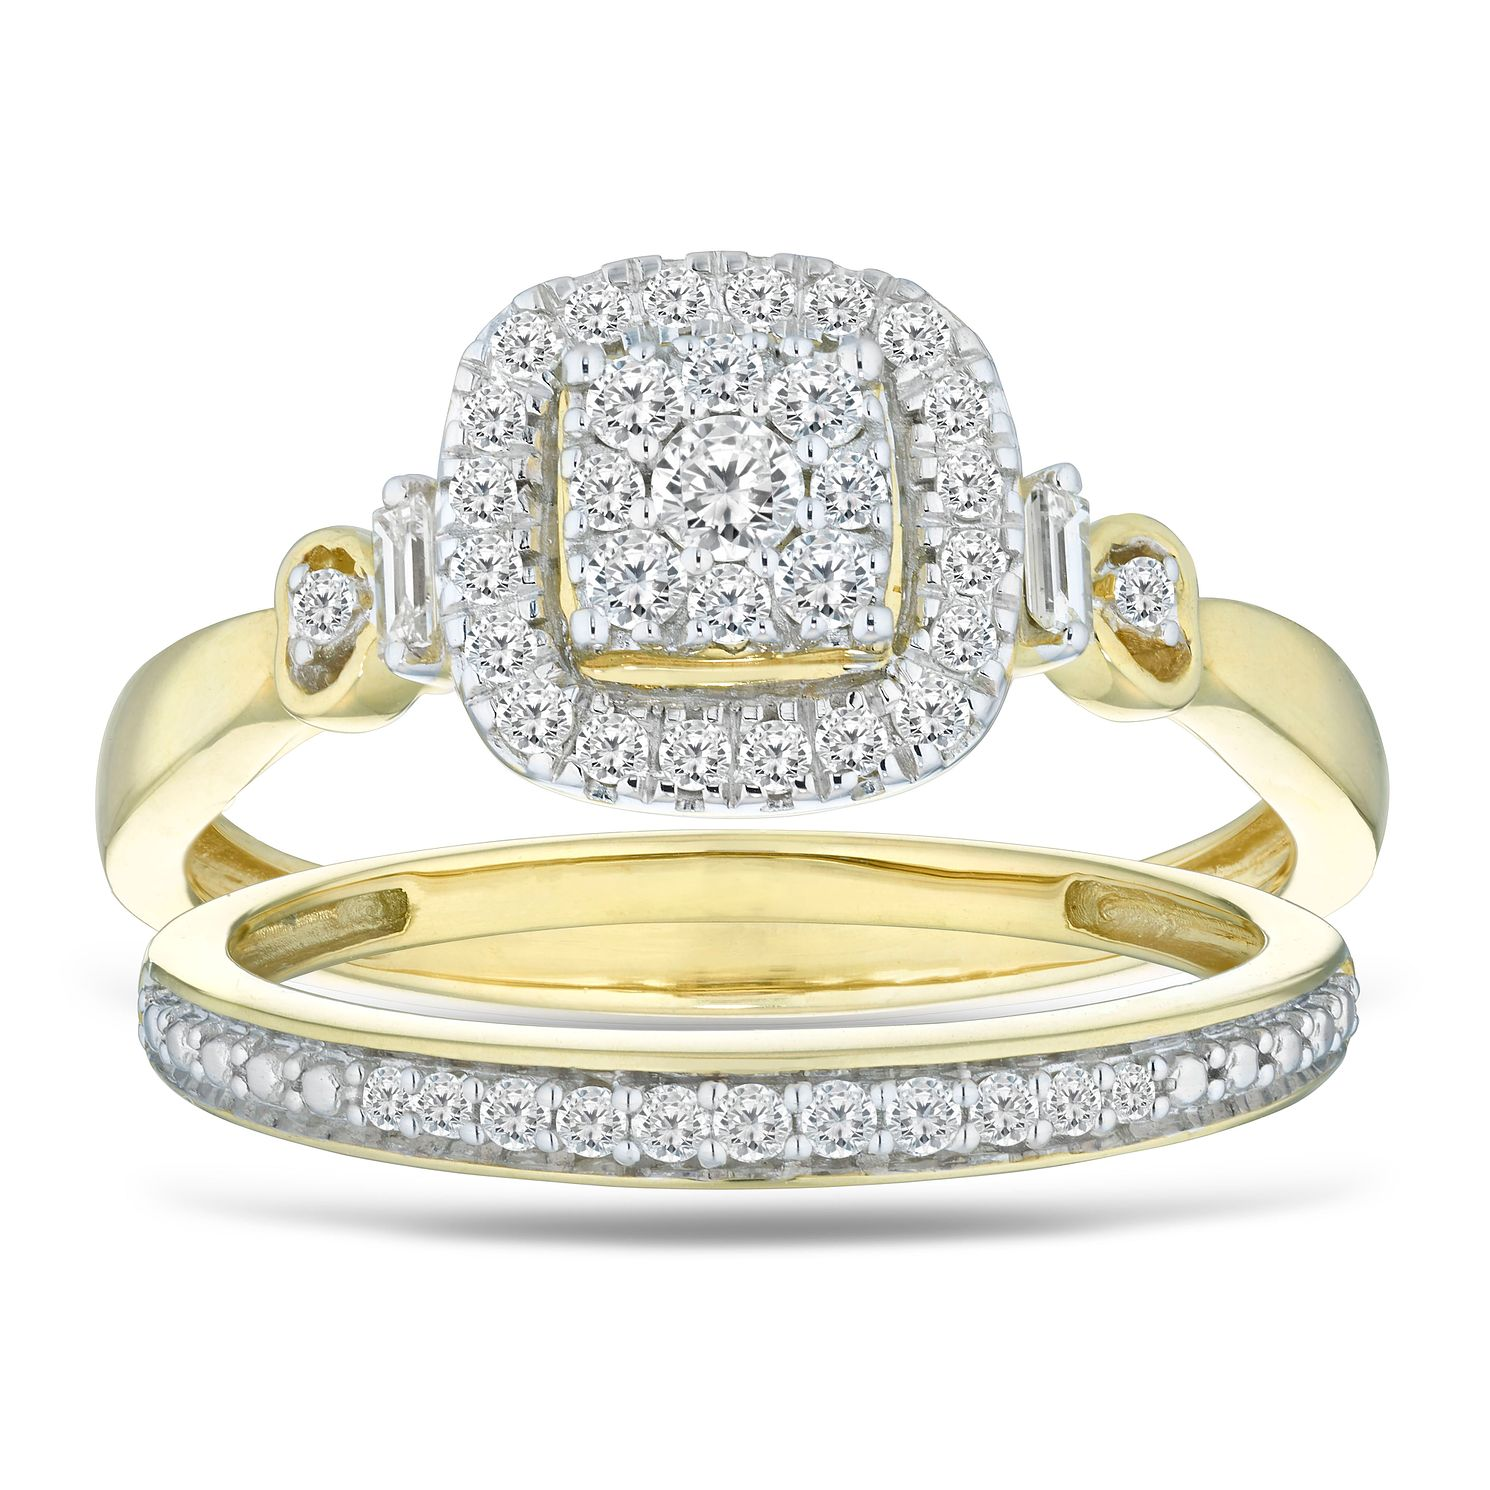 Perfect Fit 9ct Yellow Gold 1/3ct Diamond Bridal Ring Set - Product number 5861152